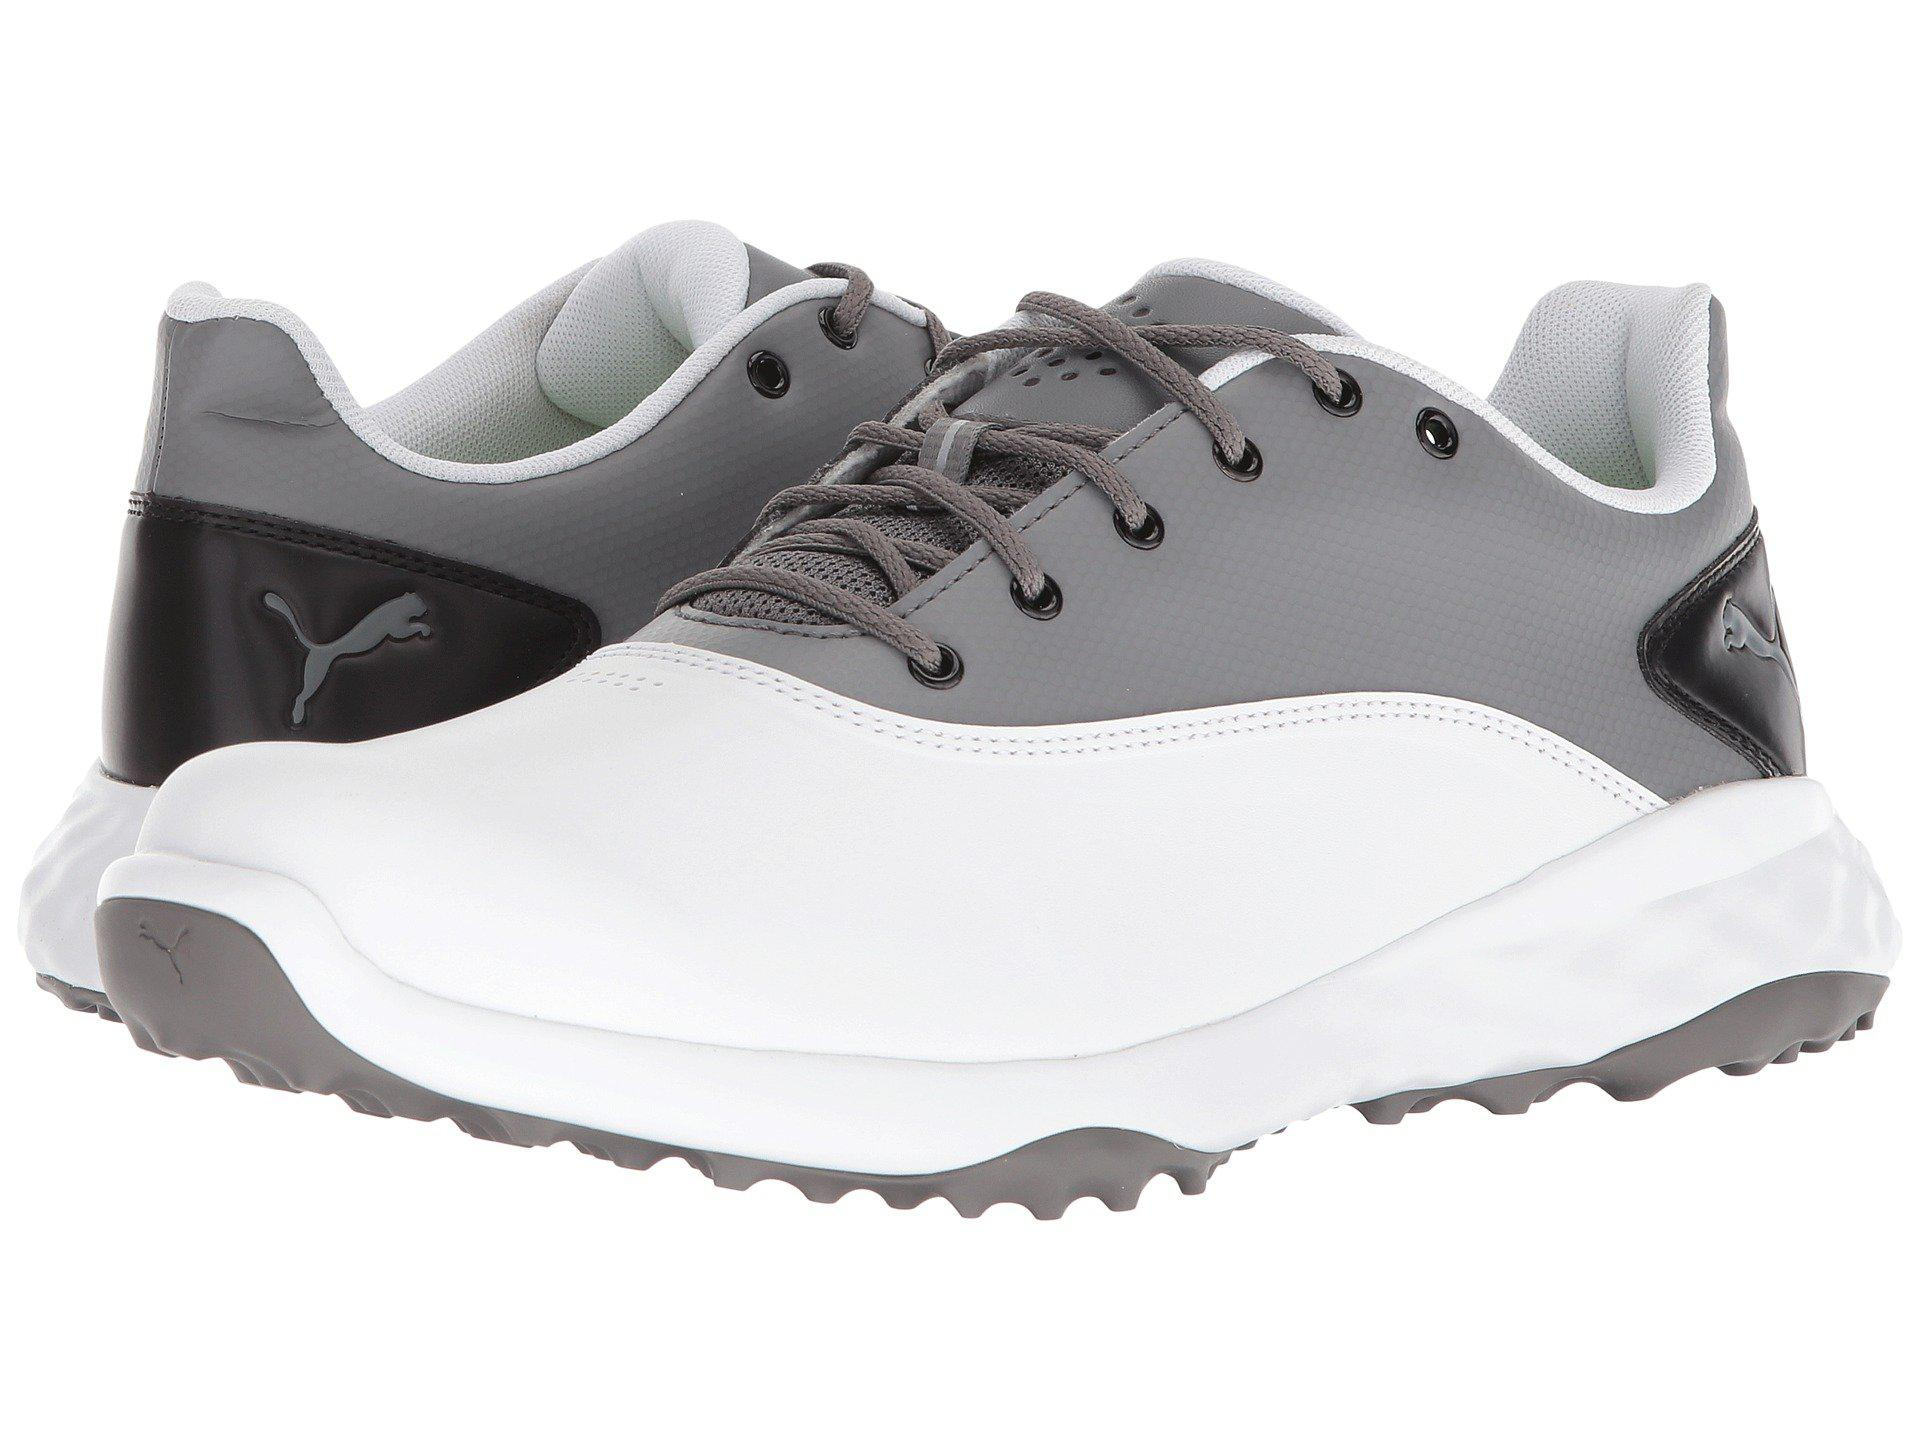 2aafc08aac85 Lyst - PUMA Grip Fusion (puma White quiet Shade puma Black) Men s ...